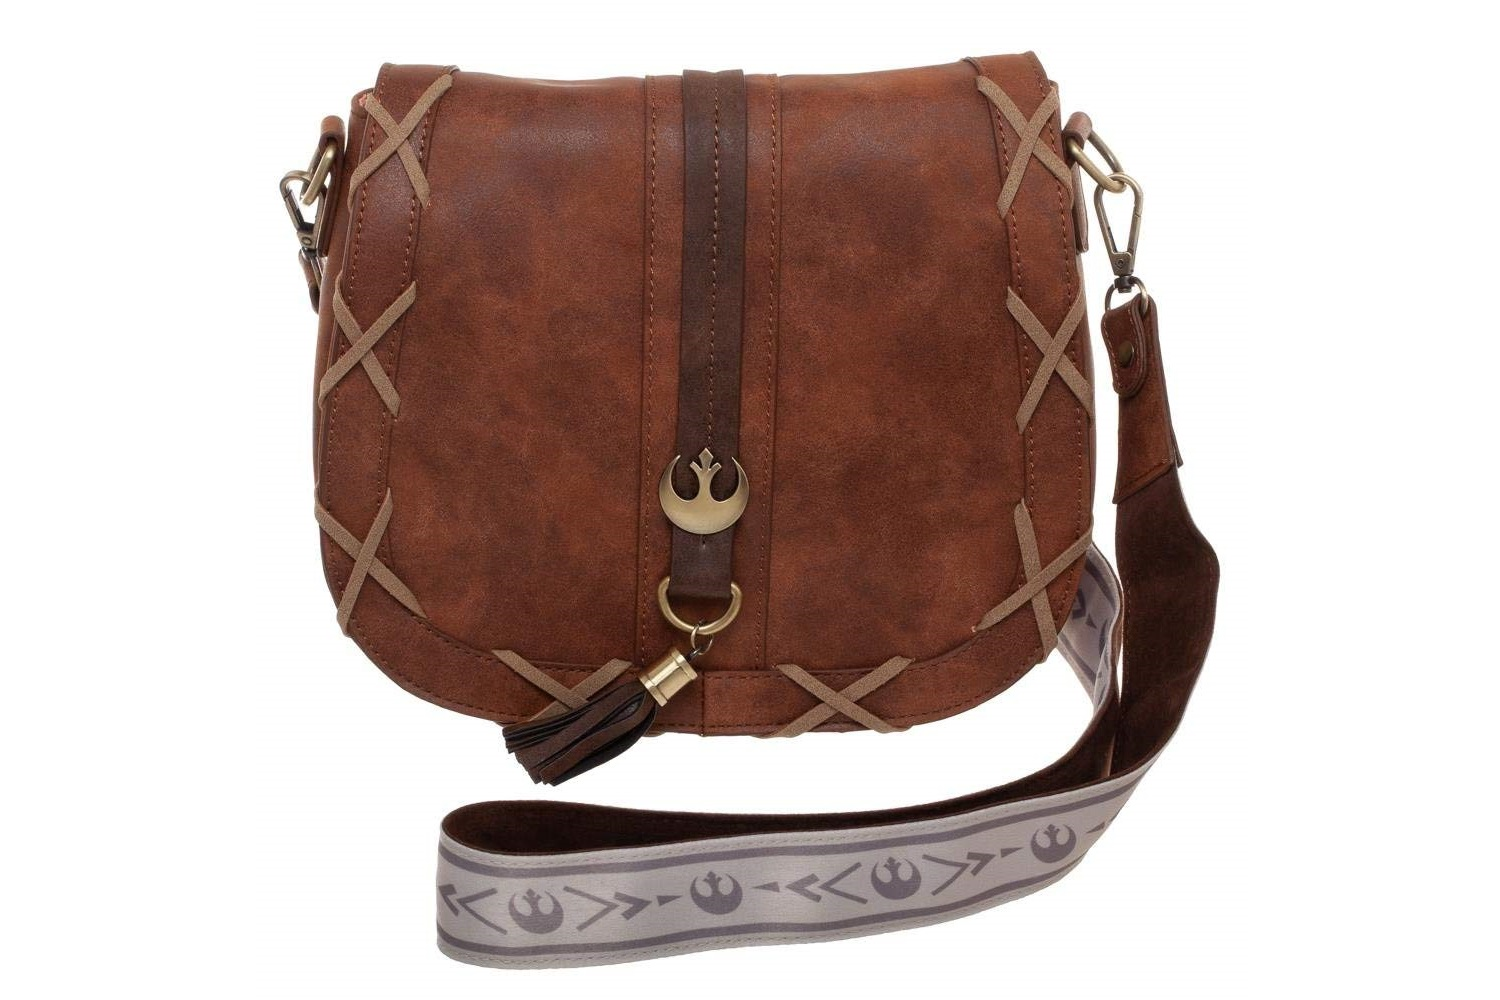 Bioworld Princess Leia Endor Saddlebag Purse